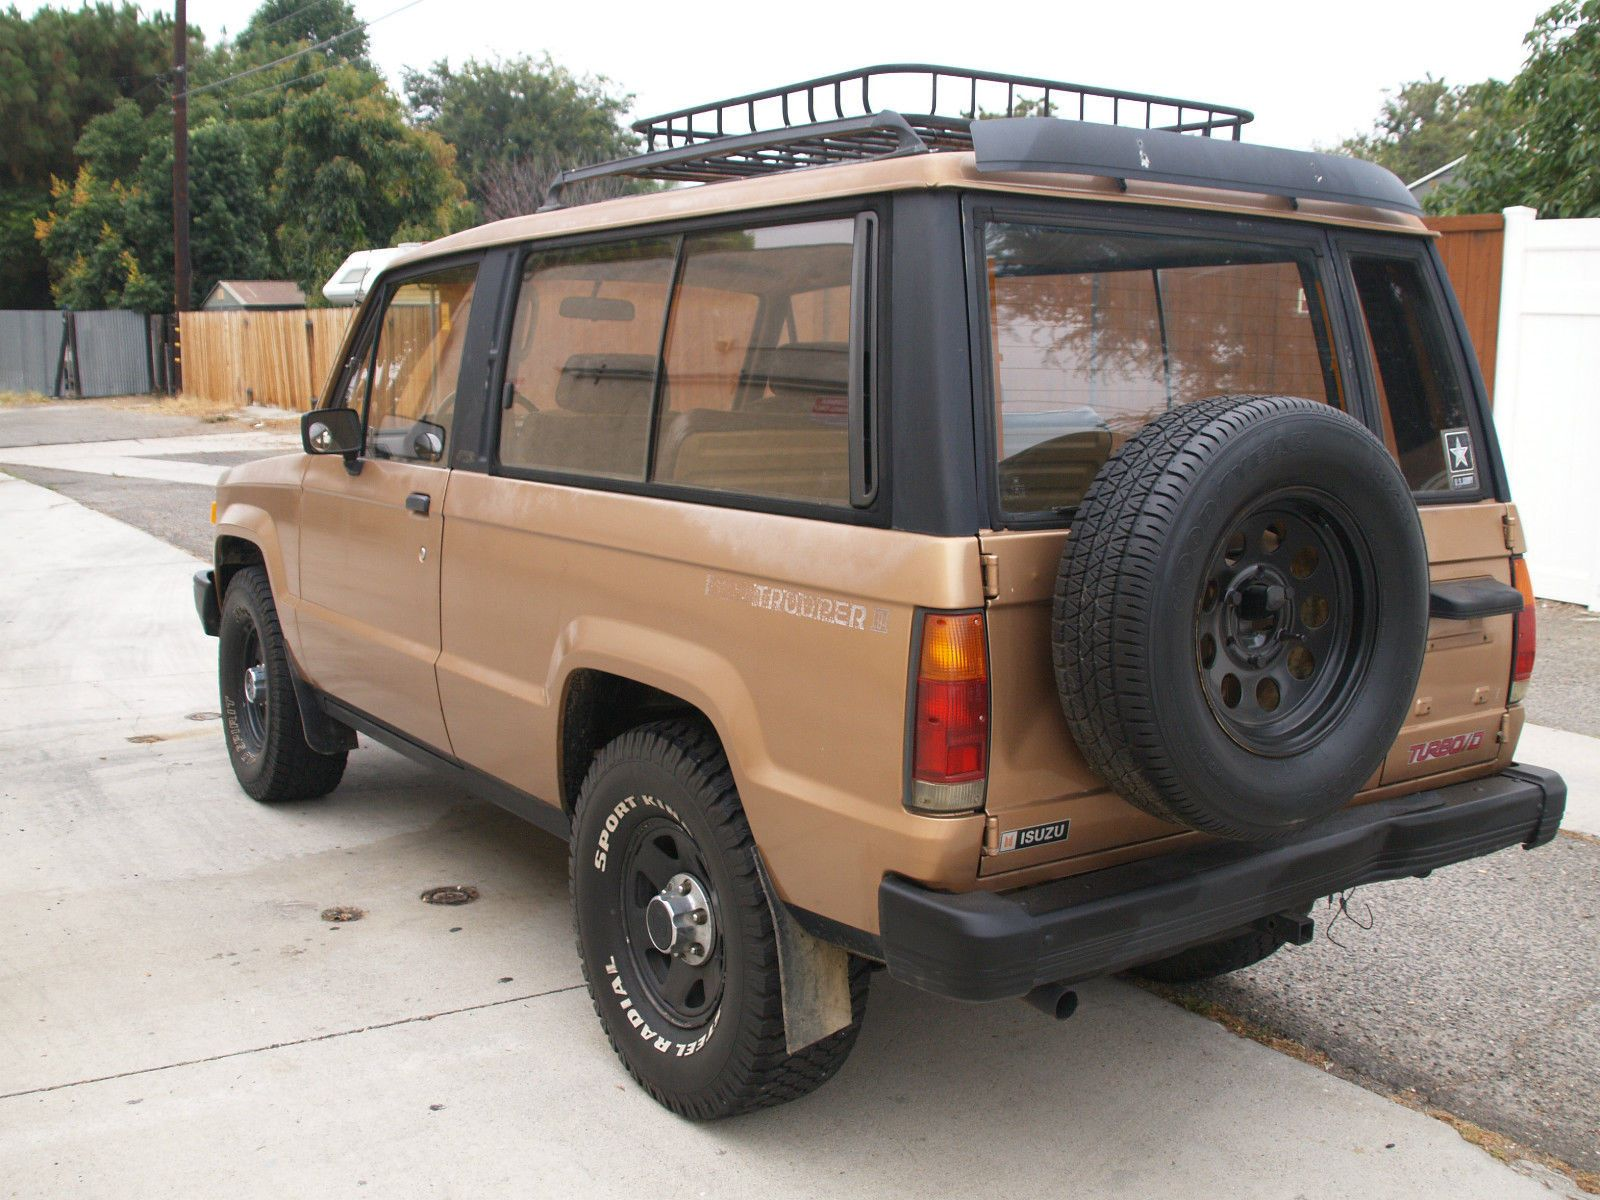 1986 isuzu trooper dlx turbo diesel 4x4 2 door manual transmission turbo  [ 1600 x 1200 Pixel ]